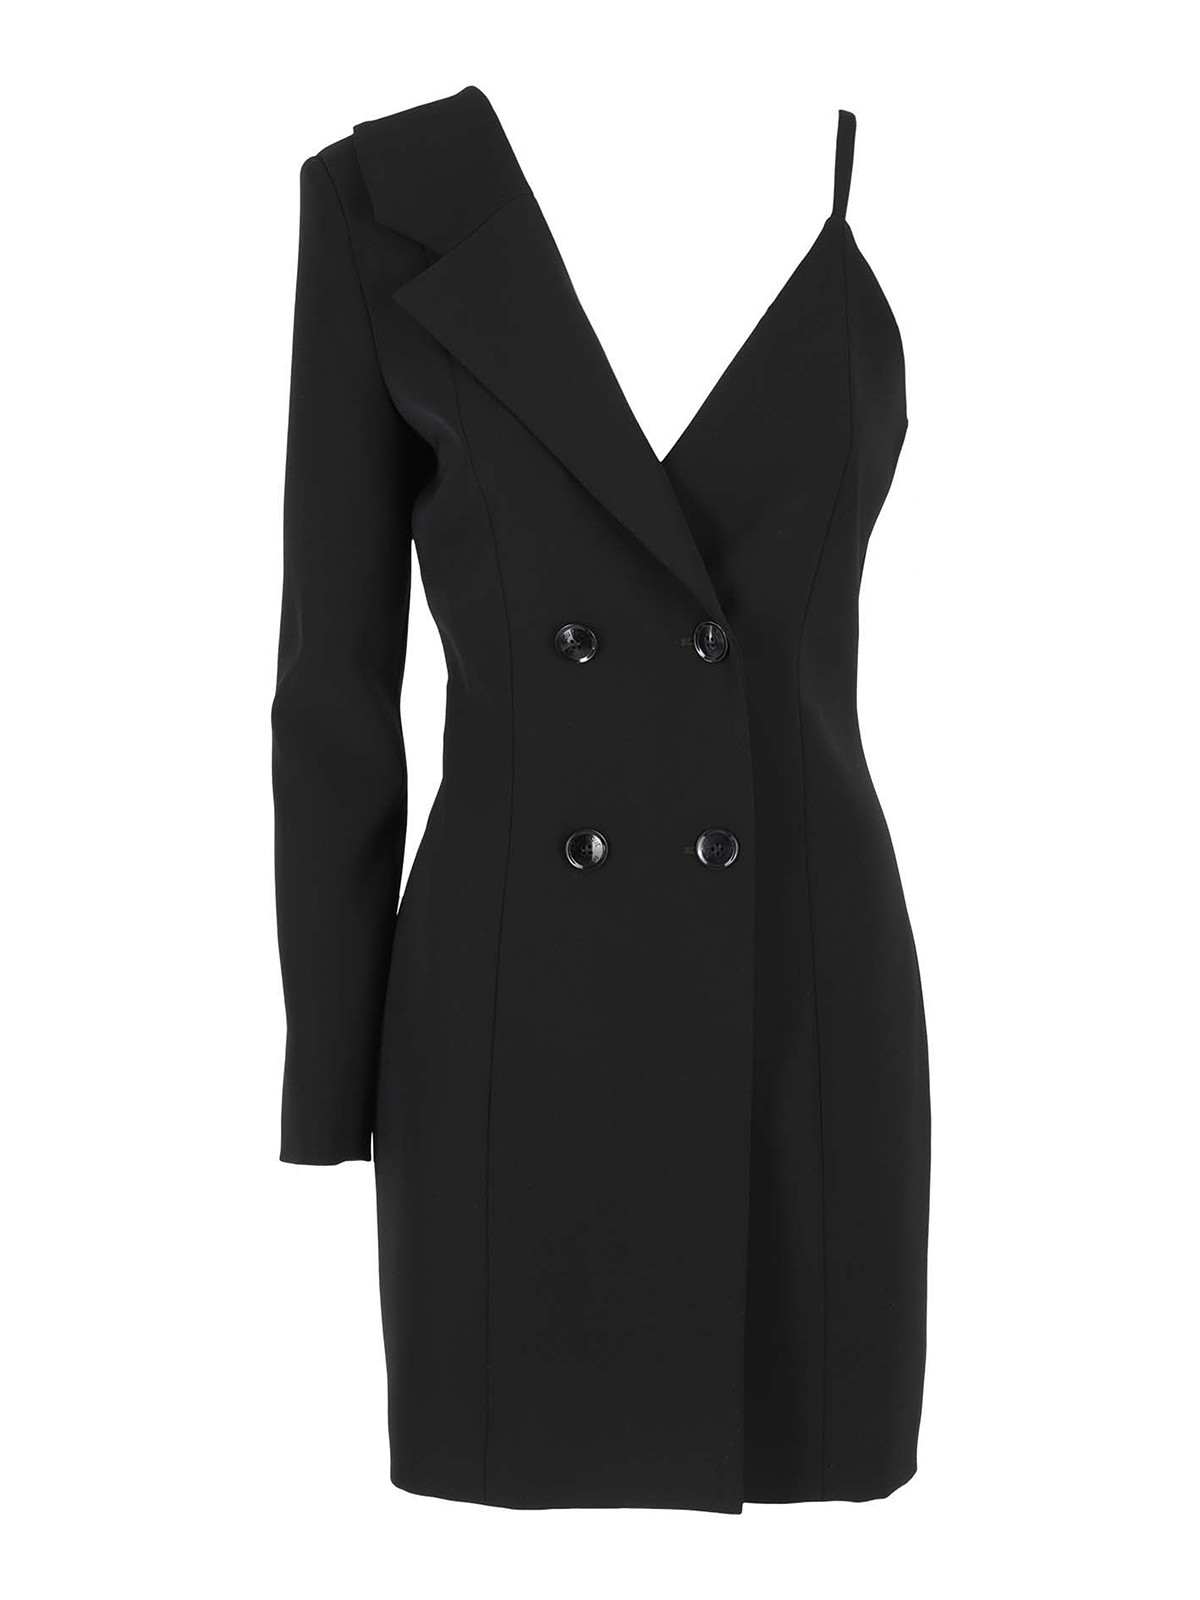 Boutique Moschino Linings CADY ROBE MANTEAU DRESS